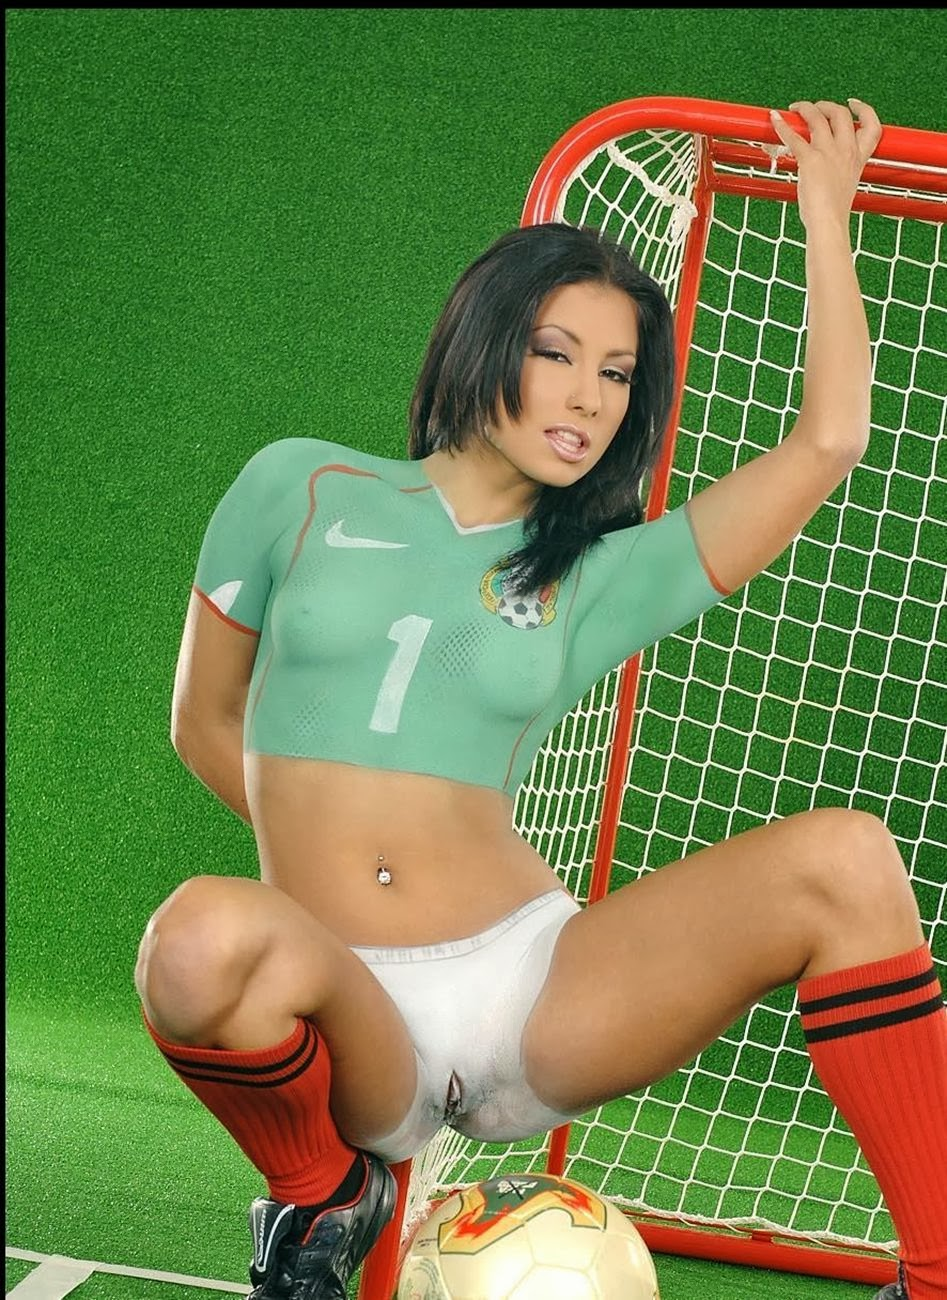 Public world cup nudes